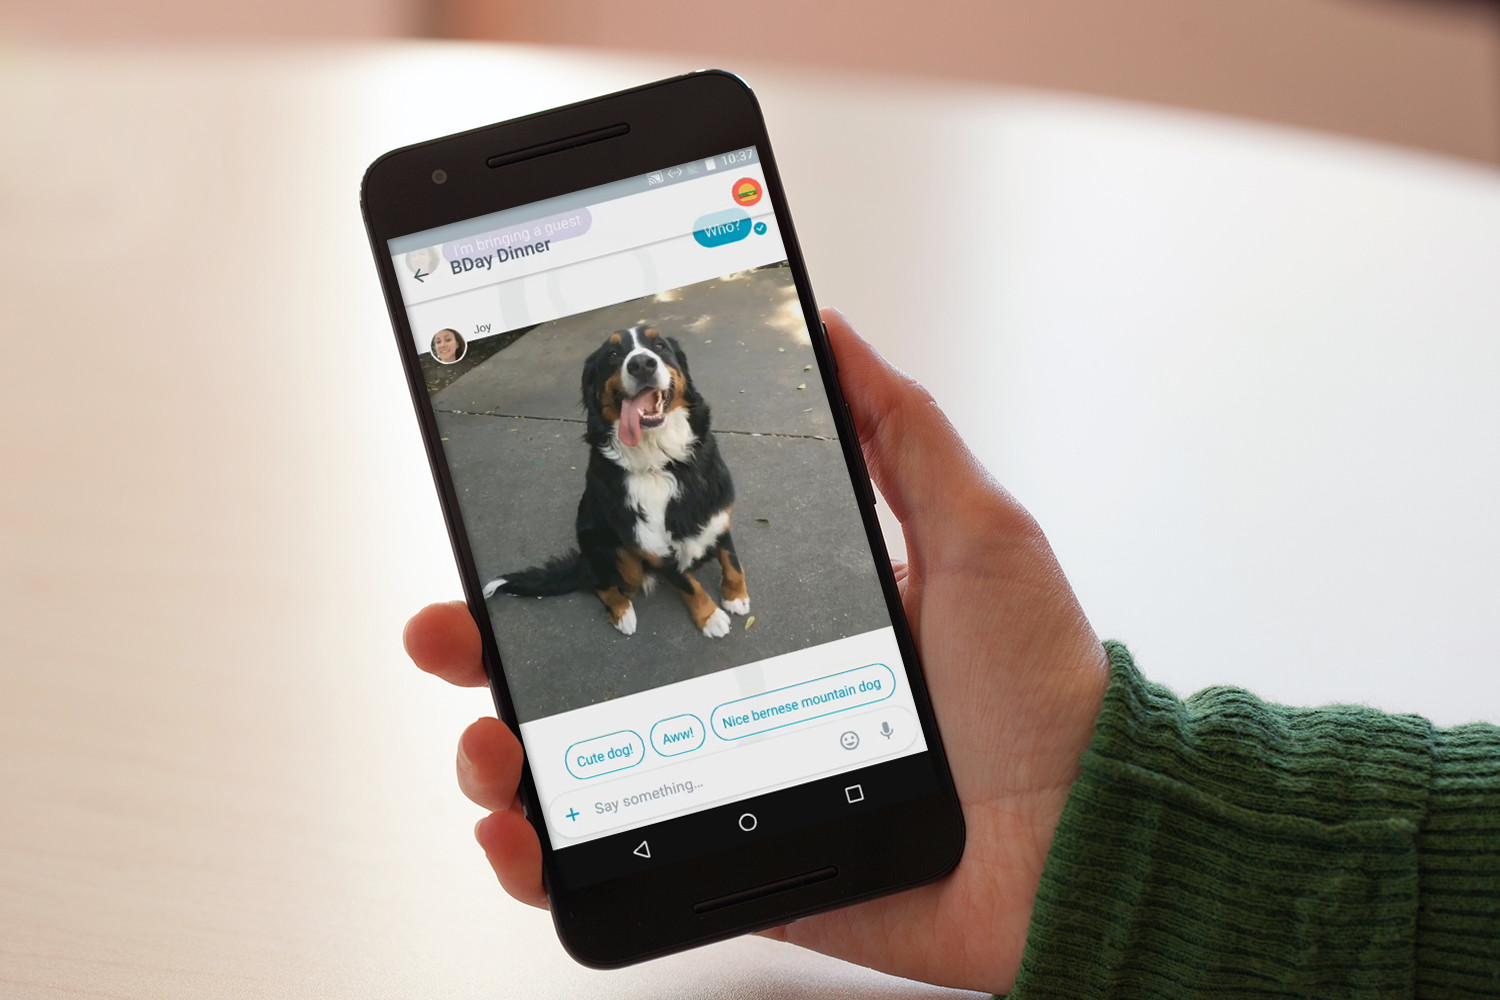 Google debuts Allo, an AI-powered messaging client for Android and iOS